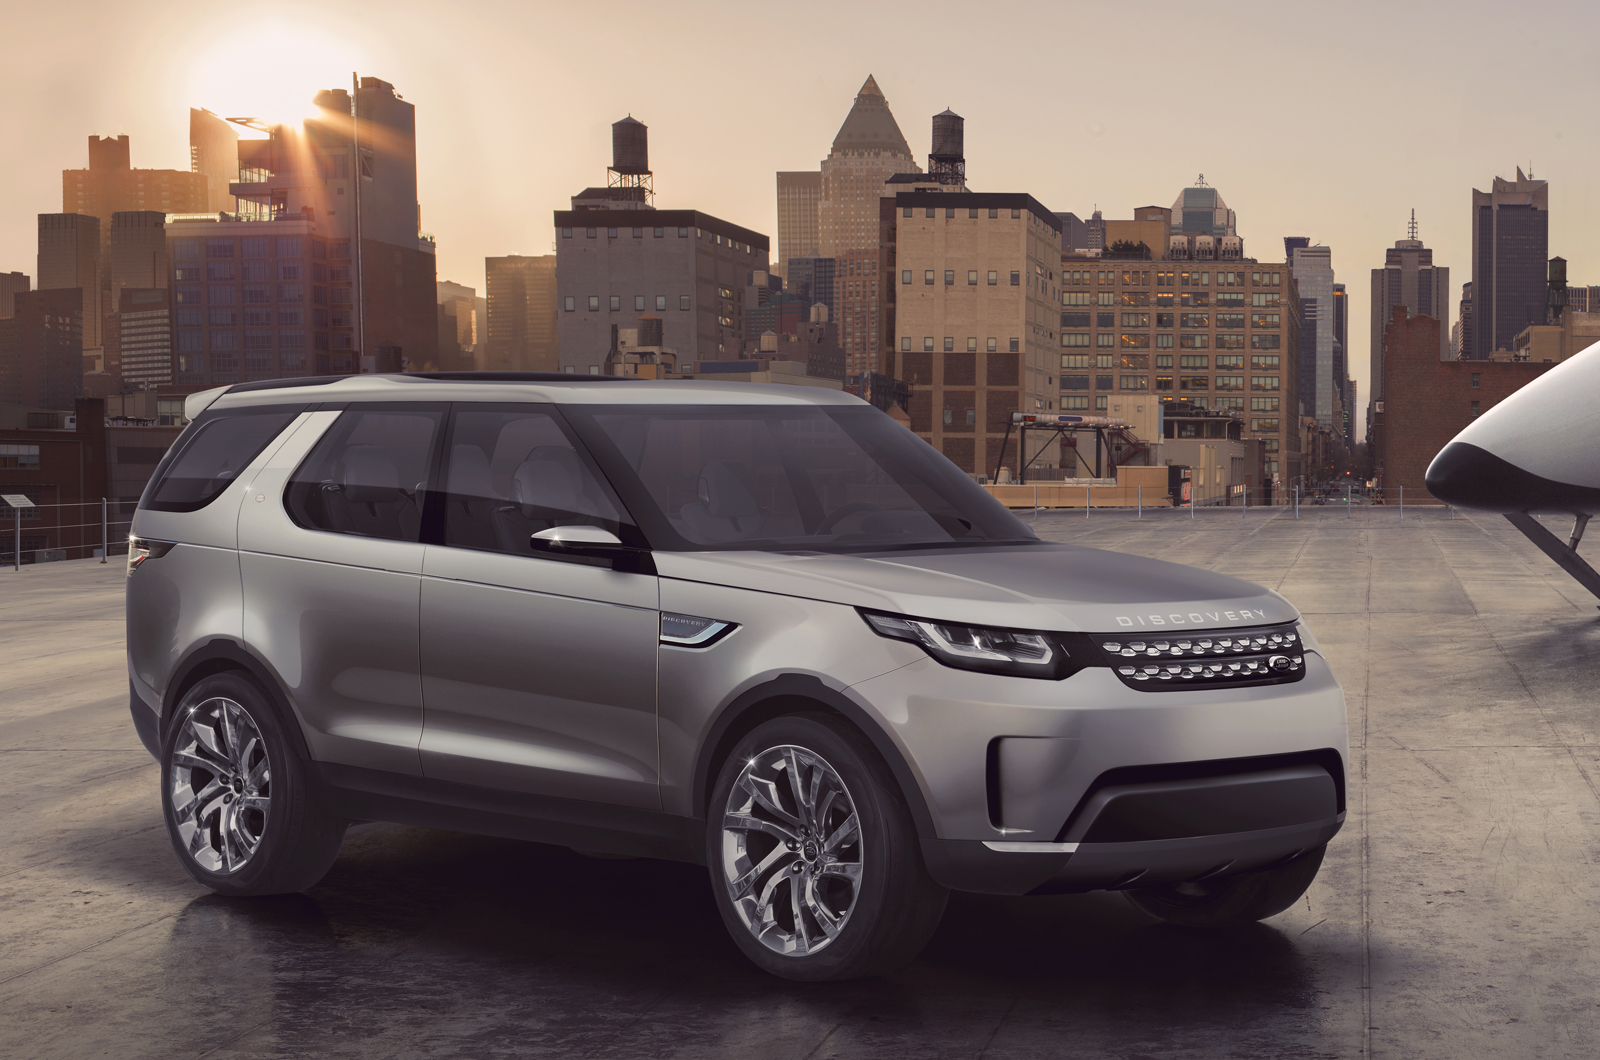 new land rover discovery suv vision concept photo gallery autocar india. Black Bedroom Furniture Sets. Home Design Ideas